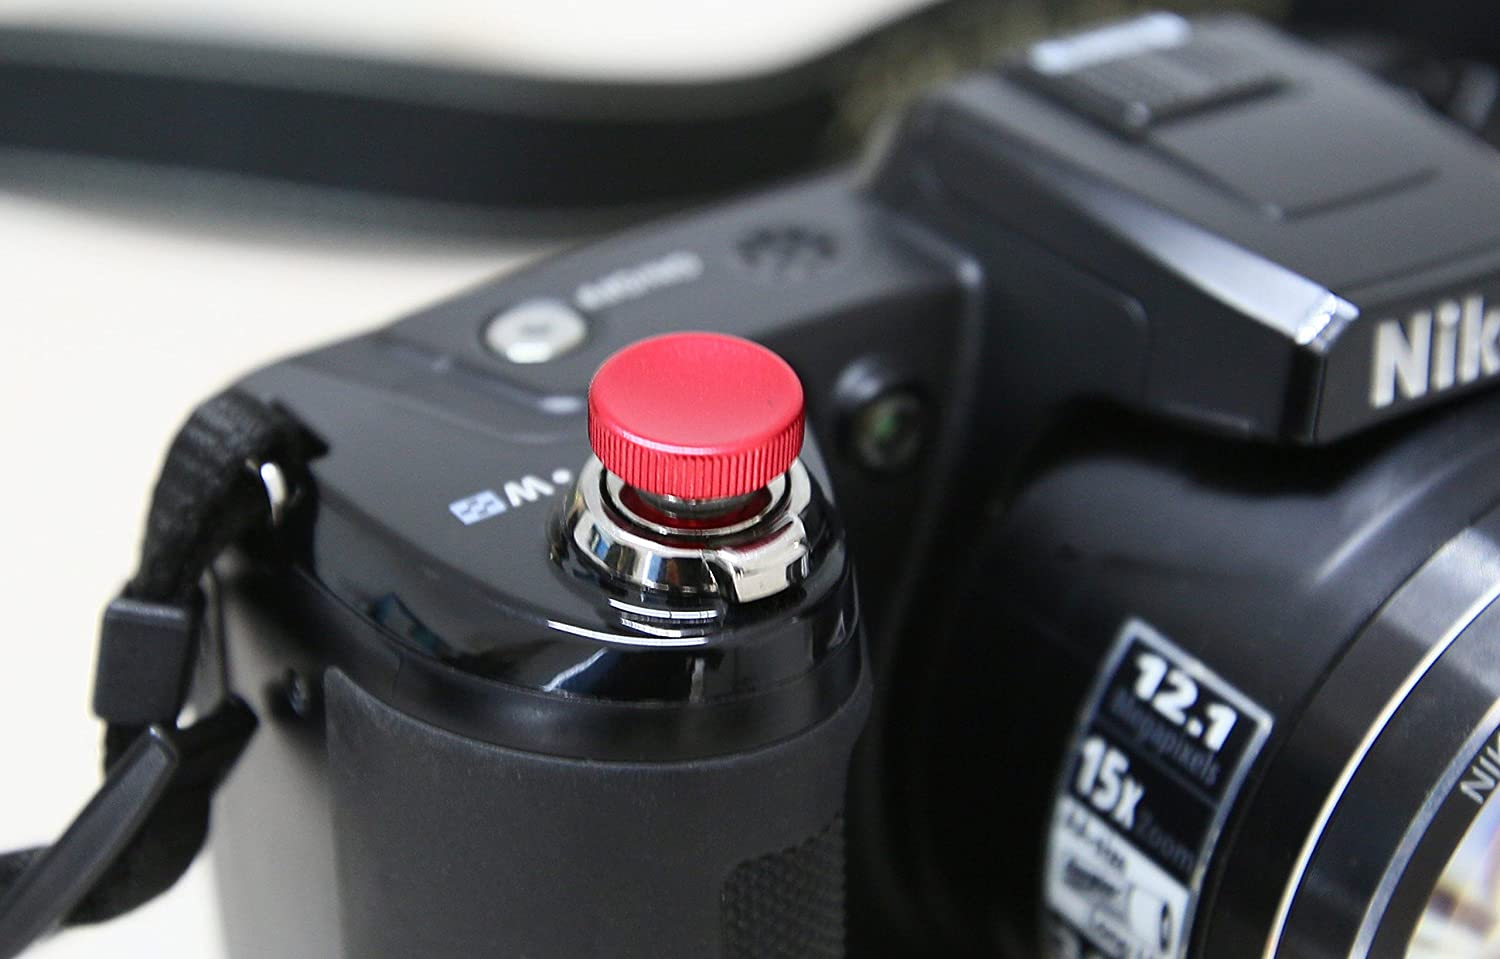 Lolumina 13MM Diameter Red Concave KN-CCV Soft-Release Button Complete Kit for Fujifilm X-T1 Sony A7